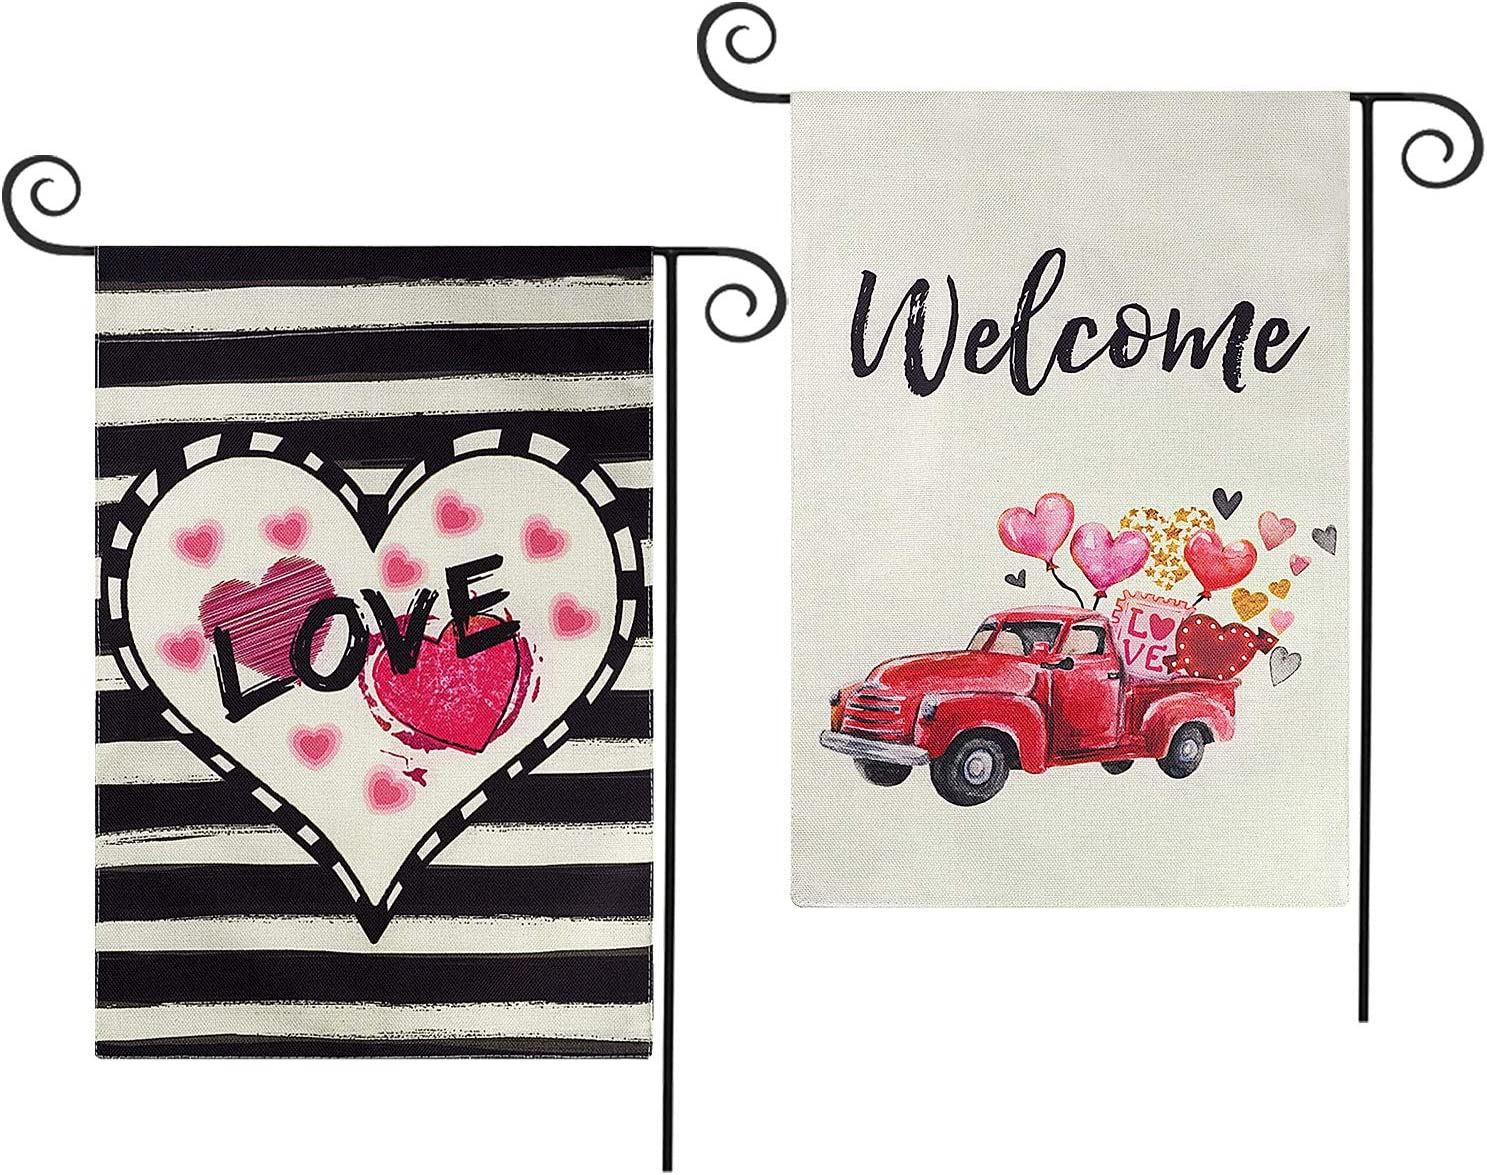 CDLong 2 Pack Valentine's Day Garden Flag - Love Heart & Love Heart Truck Yard Flag - Vertical Double Sized Holiday Yard Outdoor Decoration 12.5 x 18 Inch